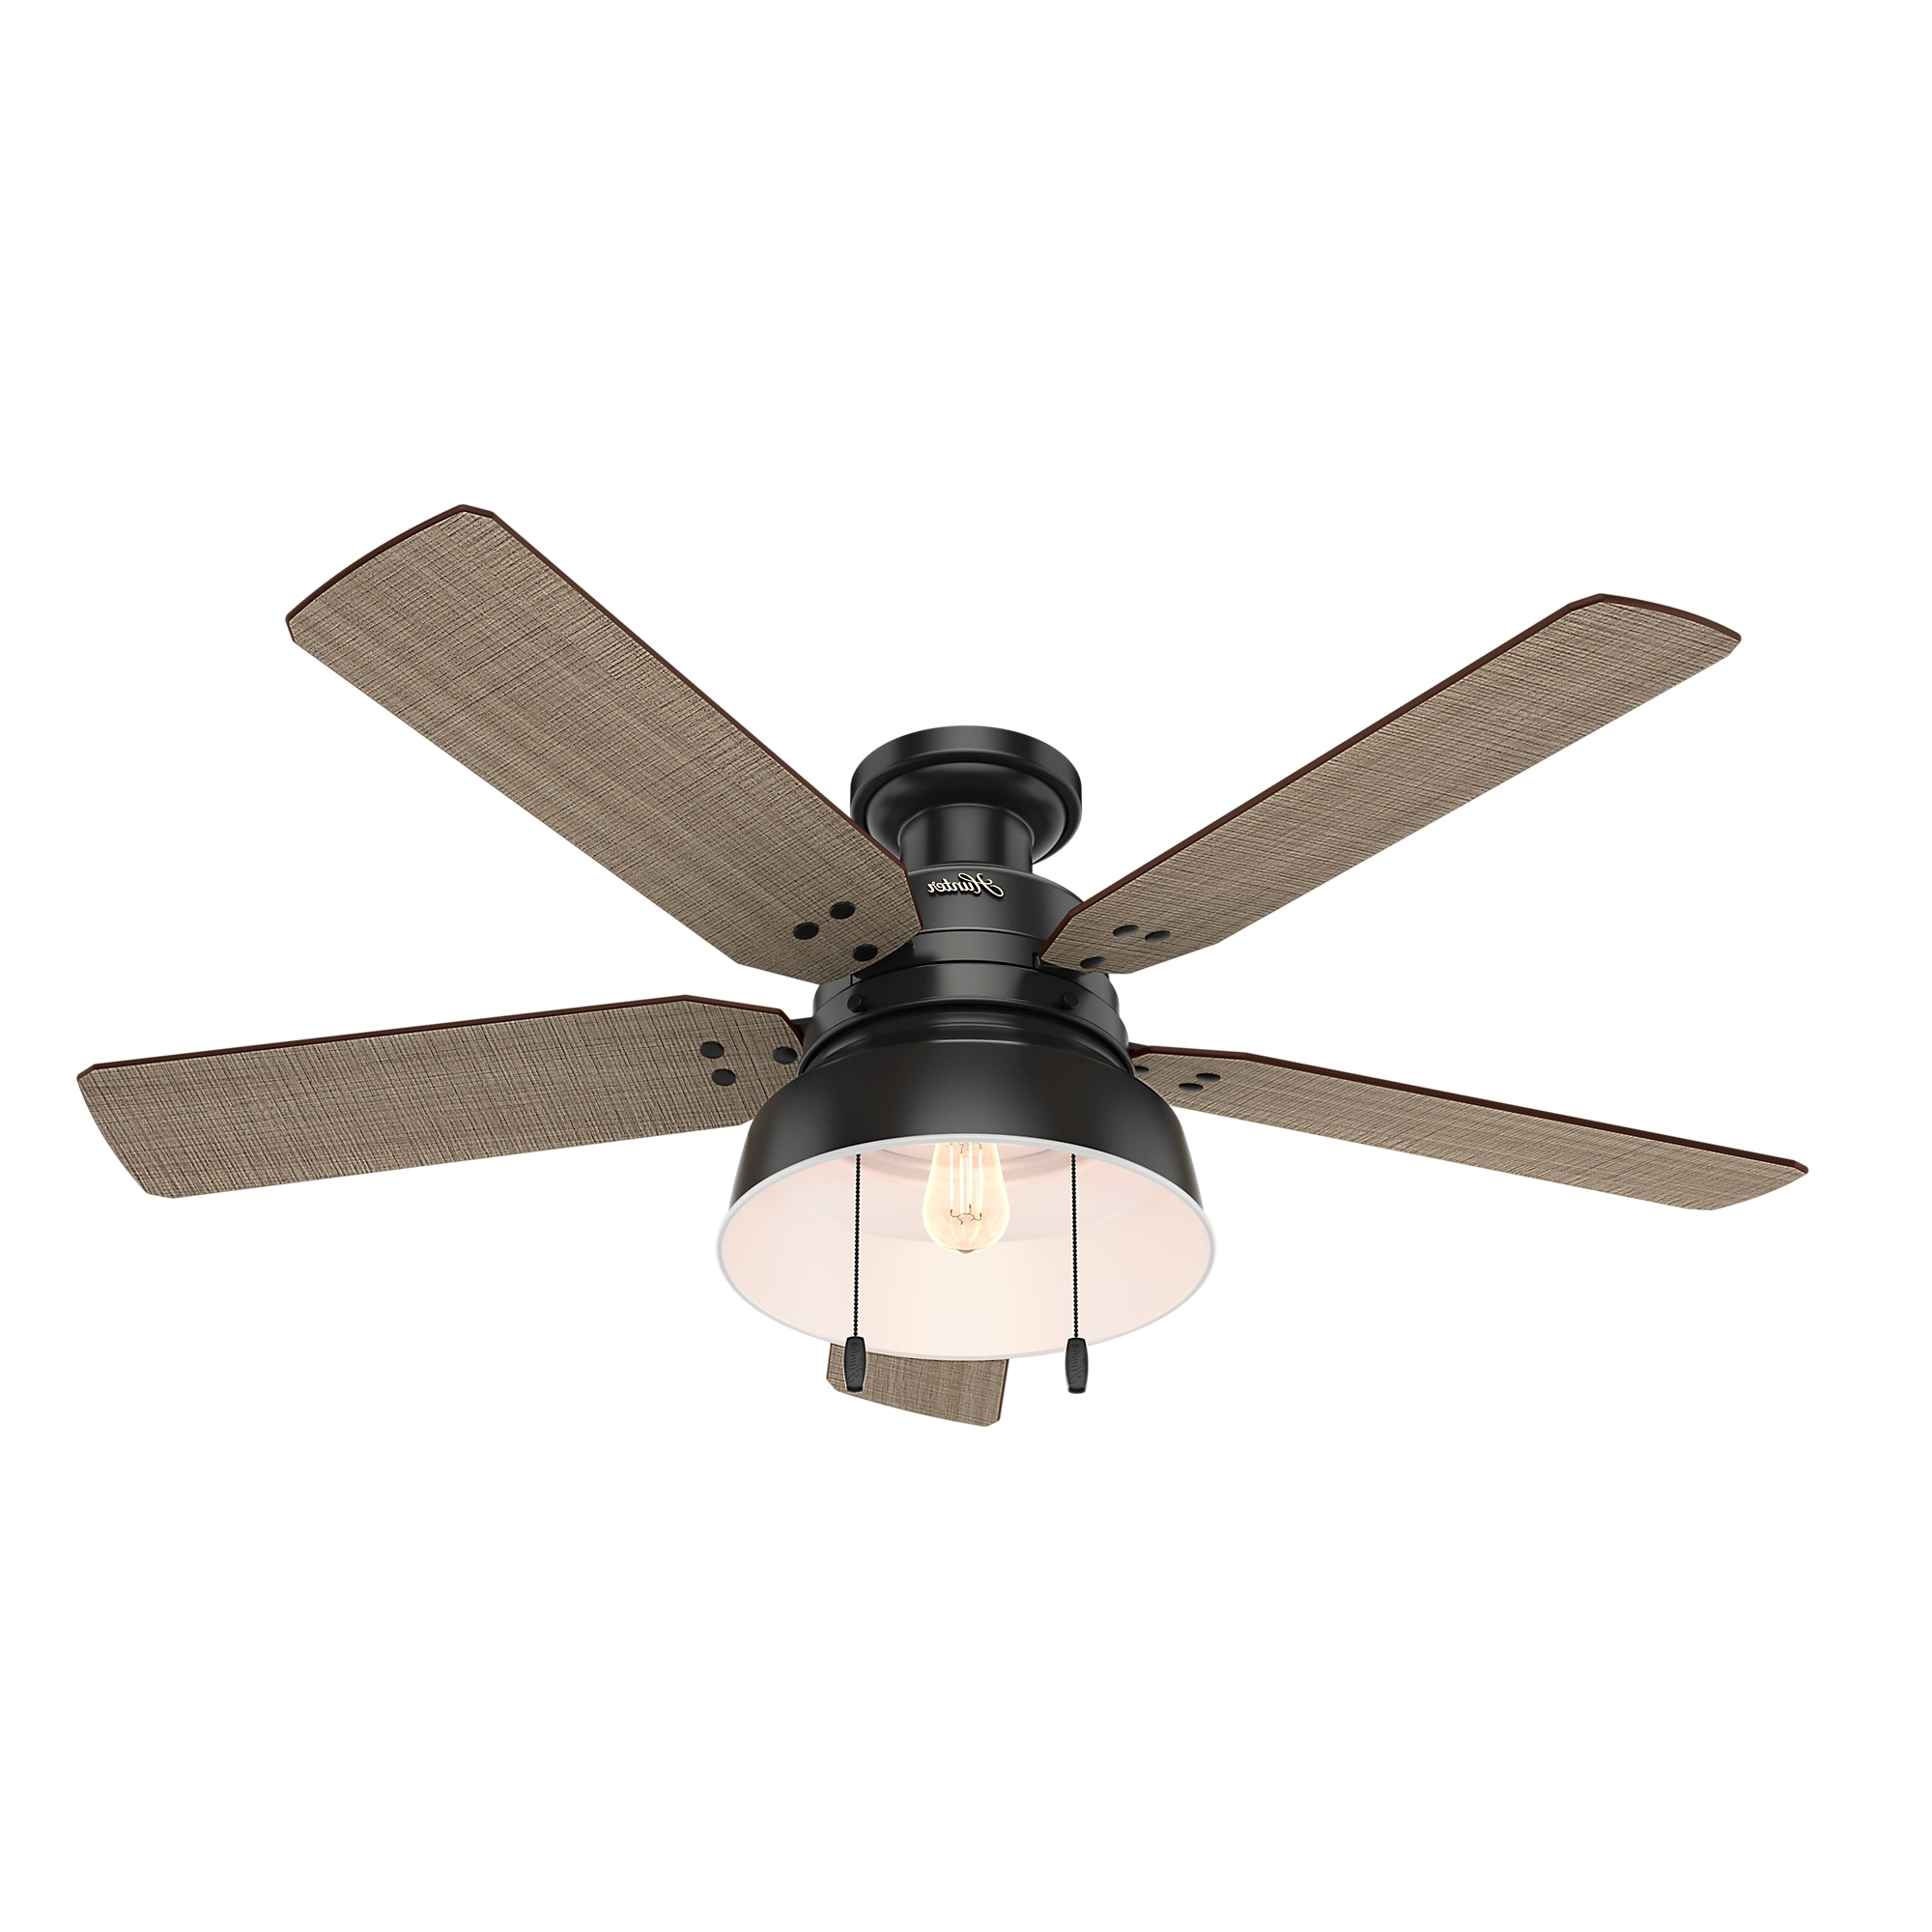 Low Profile Outdoor Ceiling Fans With Lights Throughout Widely Used Mill Valley Low Profile Outdoor Ceiling Fan With Lighthunter Fan (View 10 of 20)